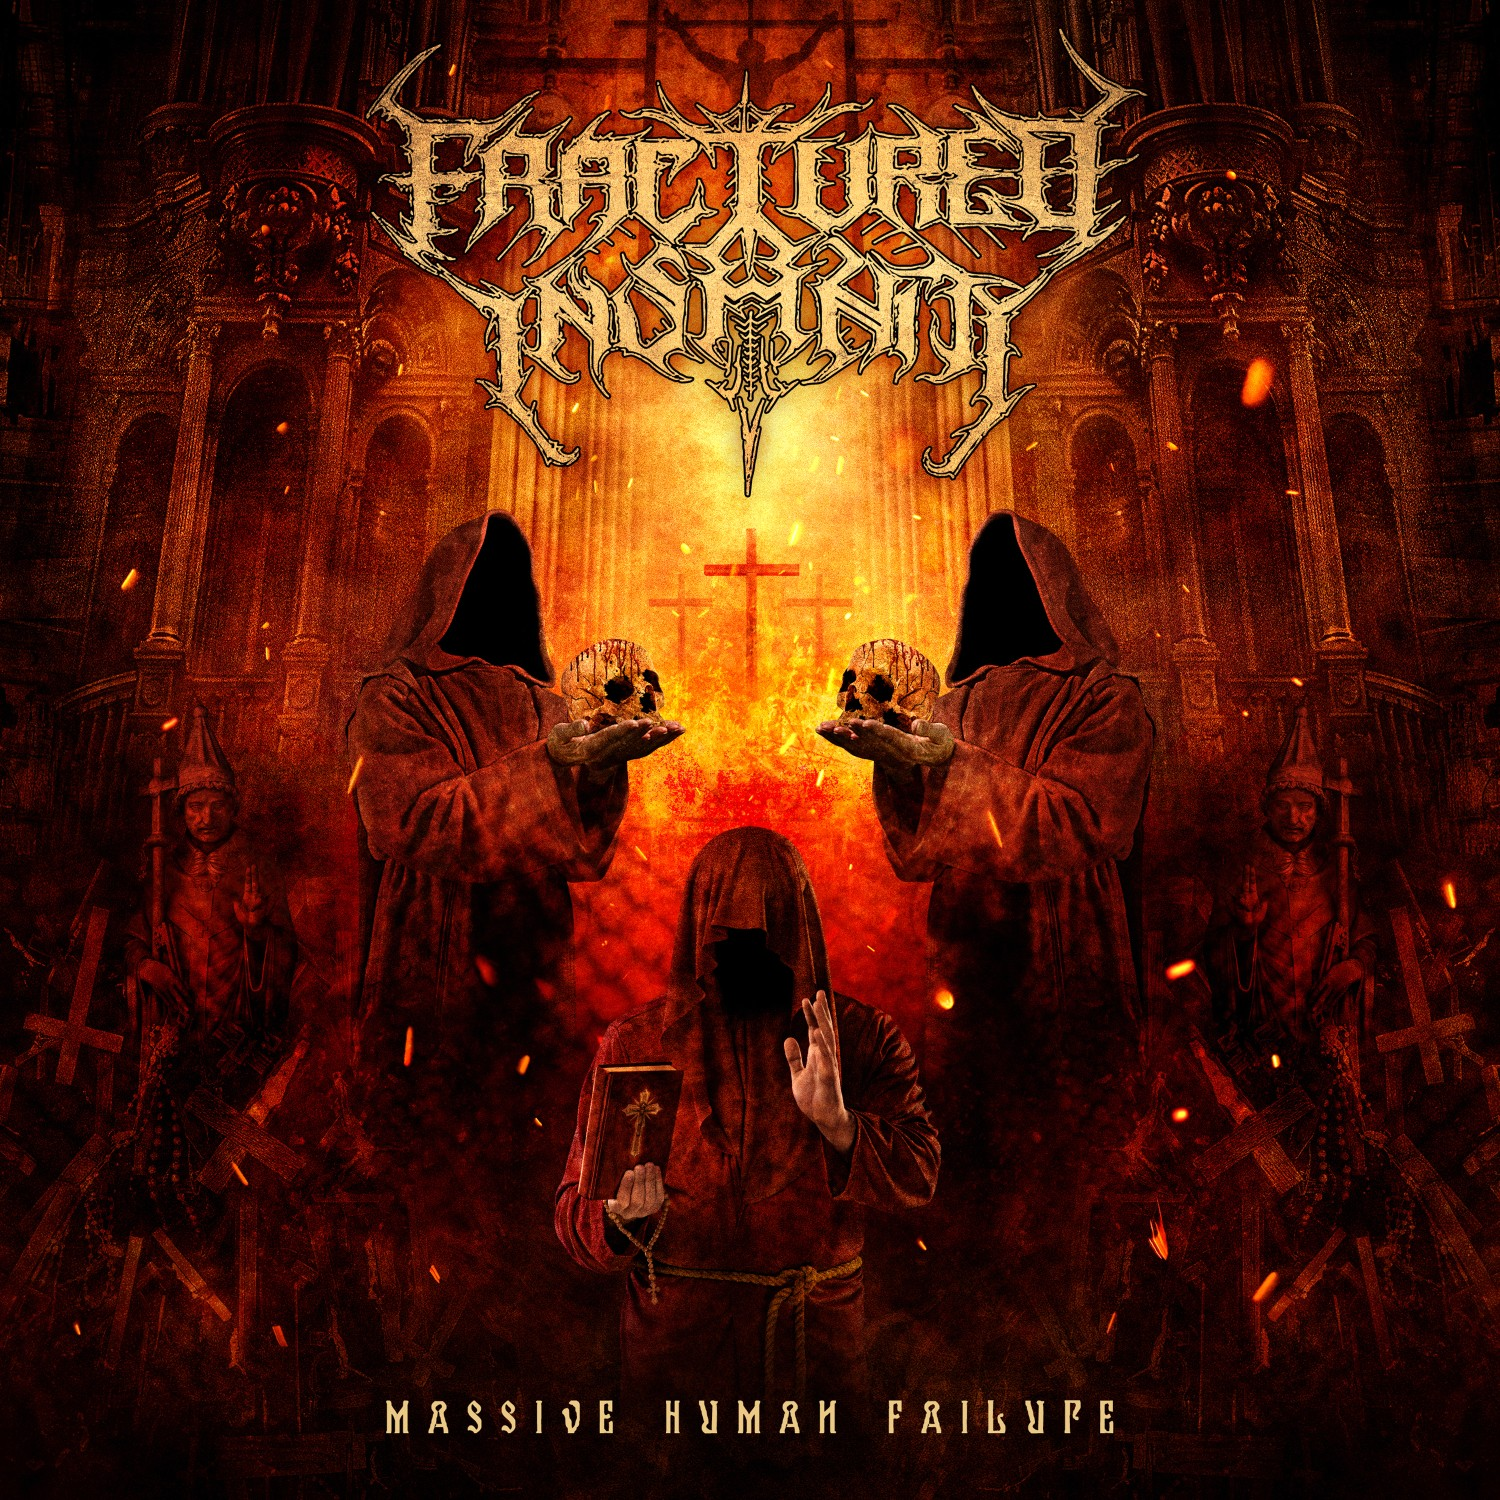 Fractured Insanity - Massive Human Failure coverart 2020